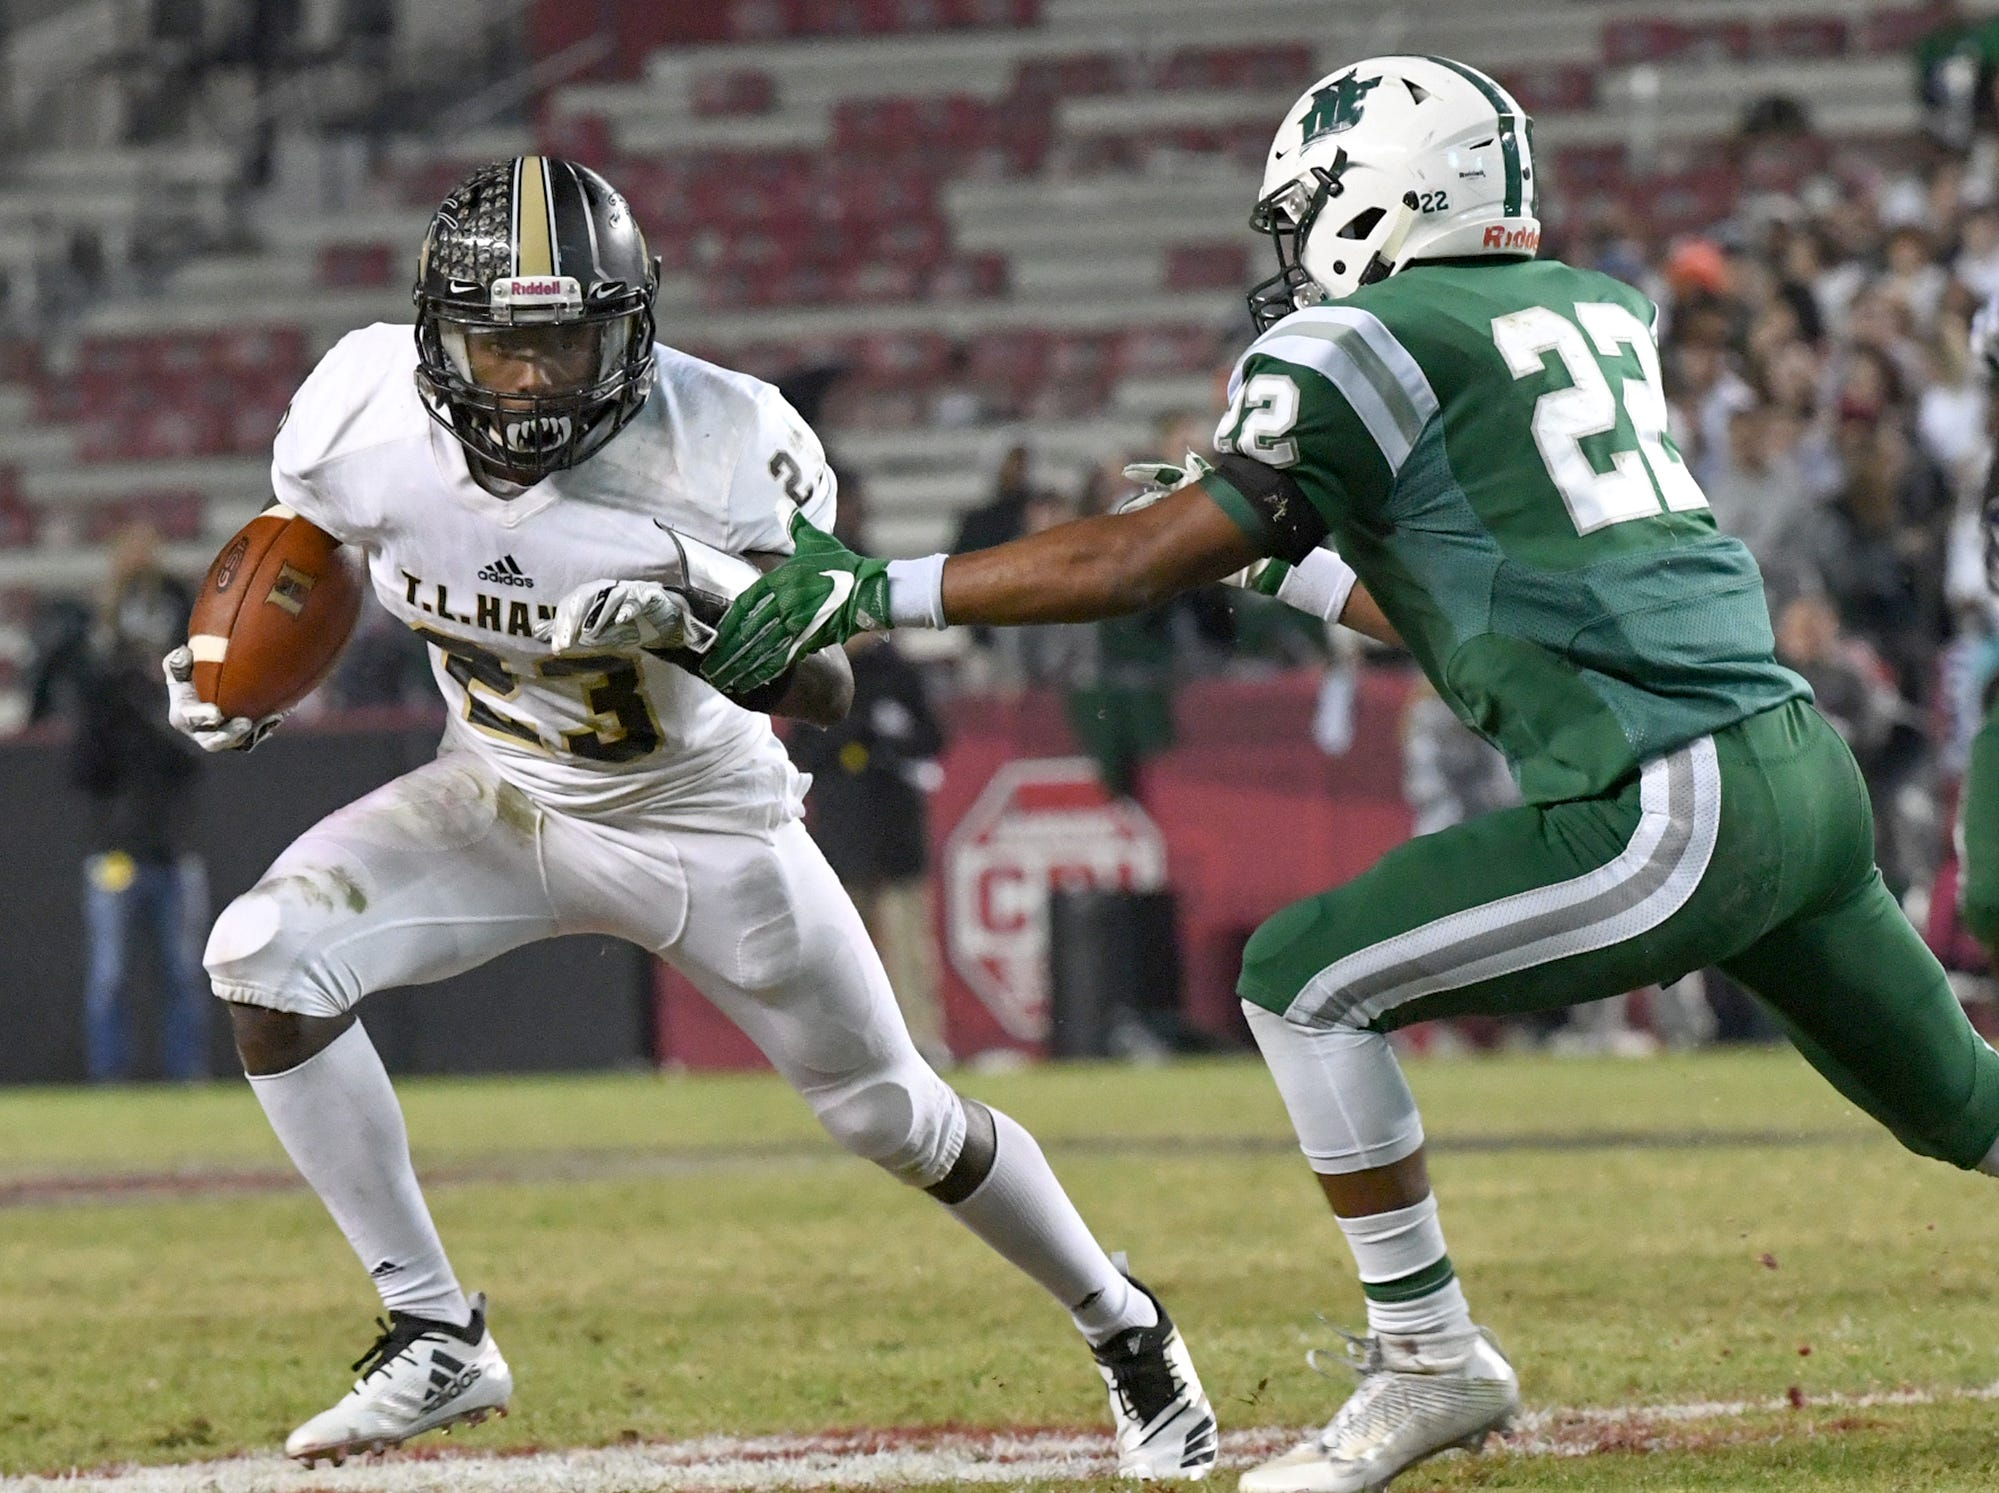 TL Hanna senior Isaiah Norris (23) runs near Dutch Fork senior Ryan Harris(22) during the second quarter of the Class AAAAA state championship game at Williams-Brice Stadium in Columbia Saturday, December 8, 2018.